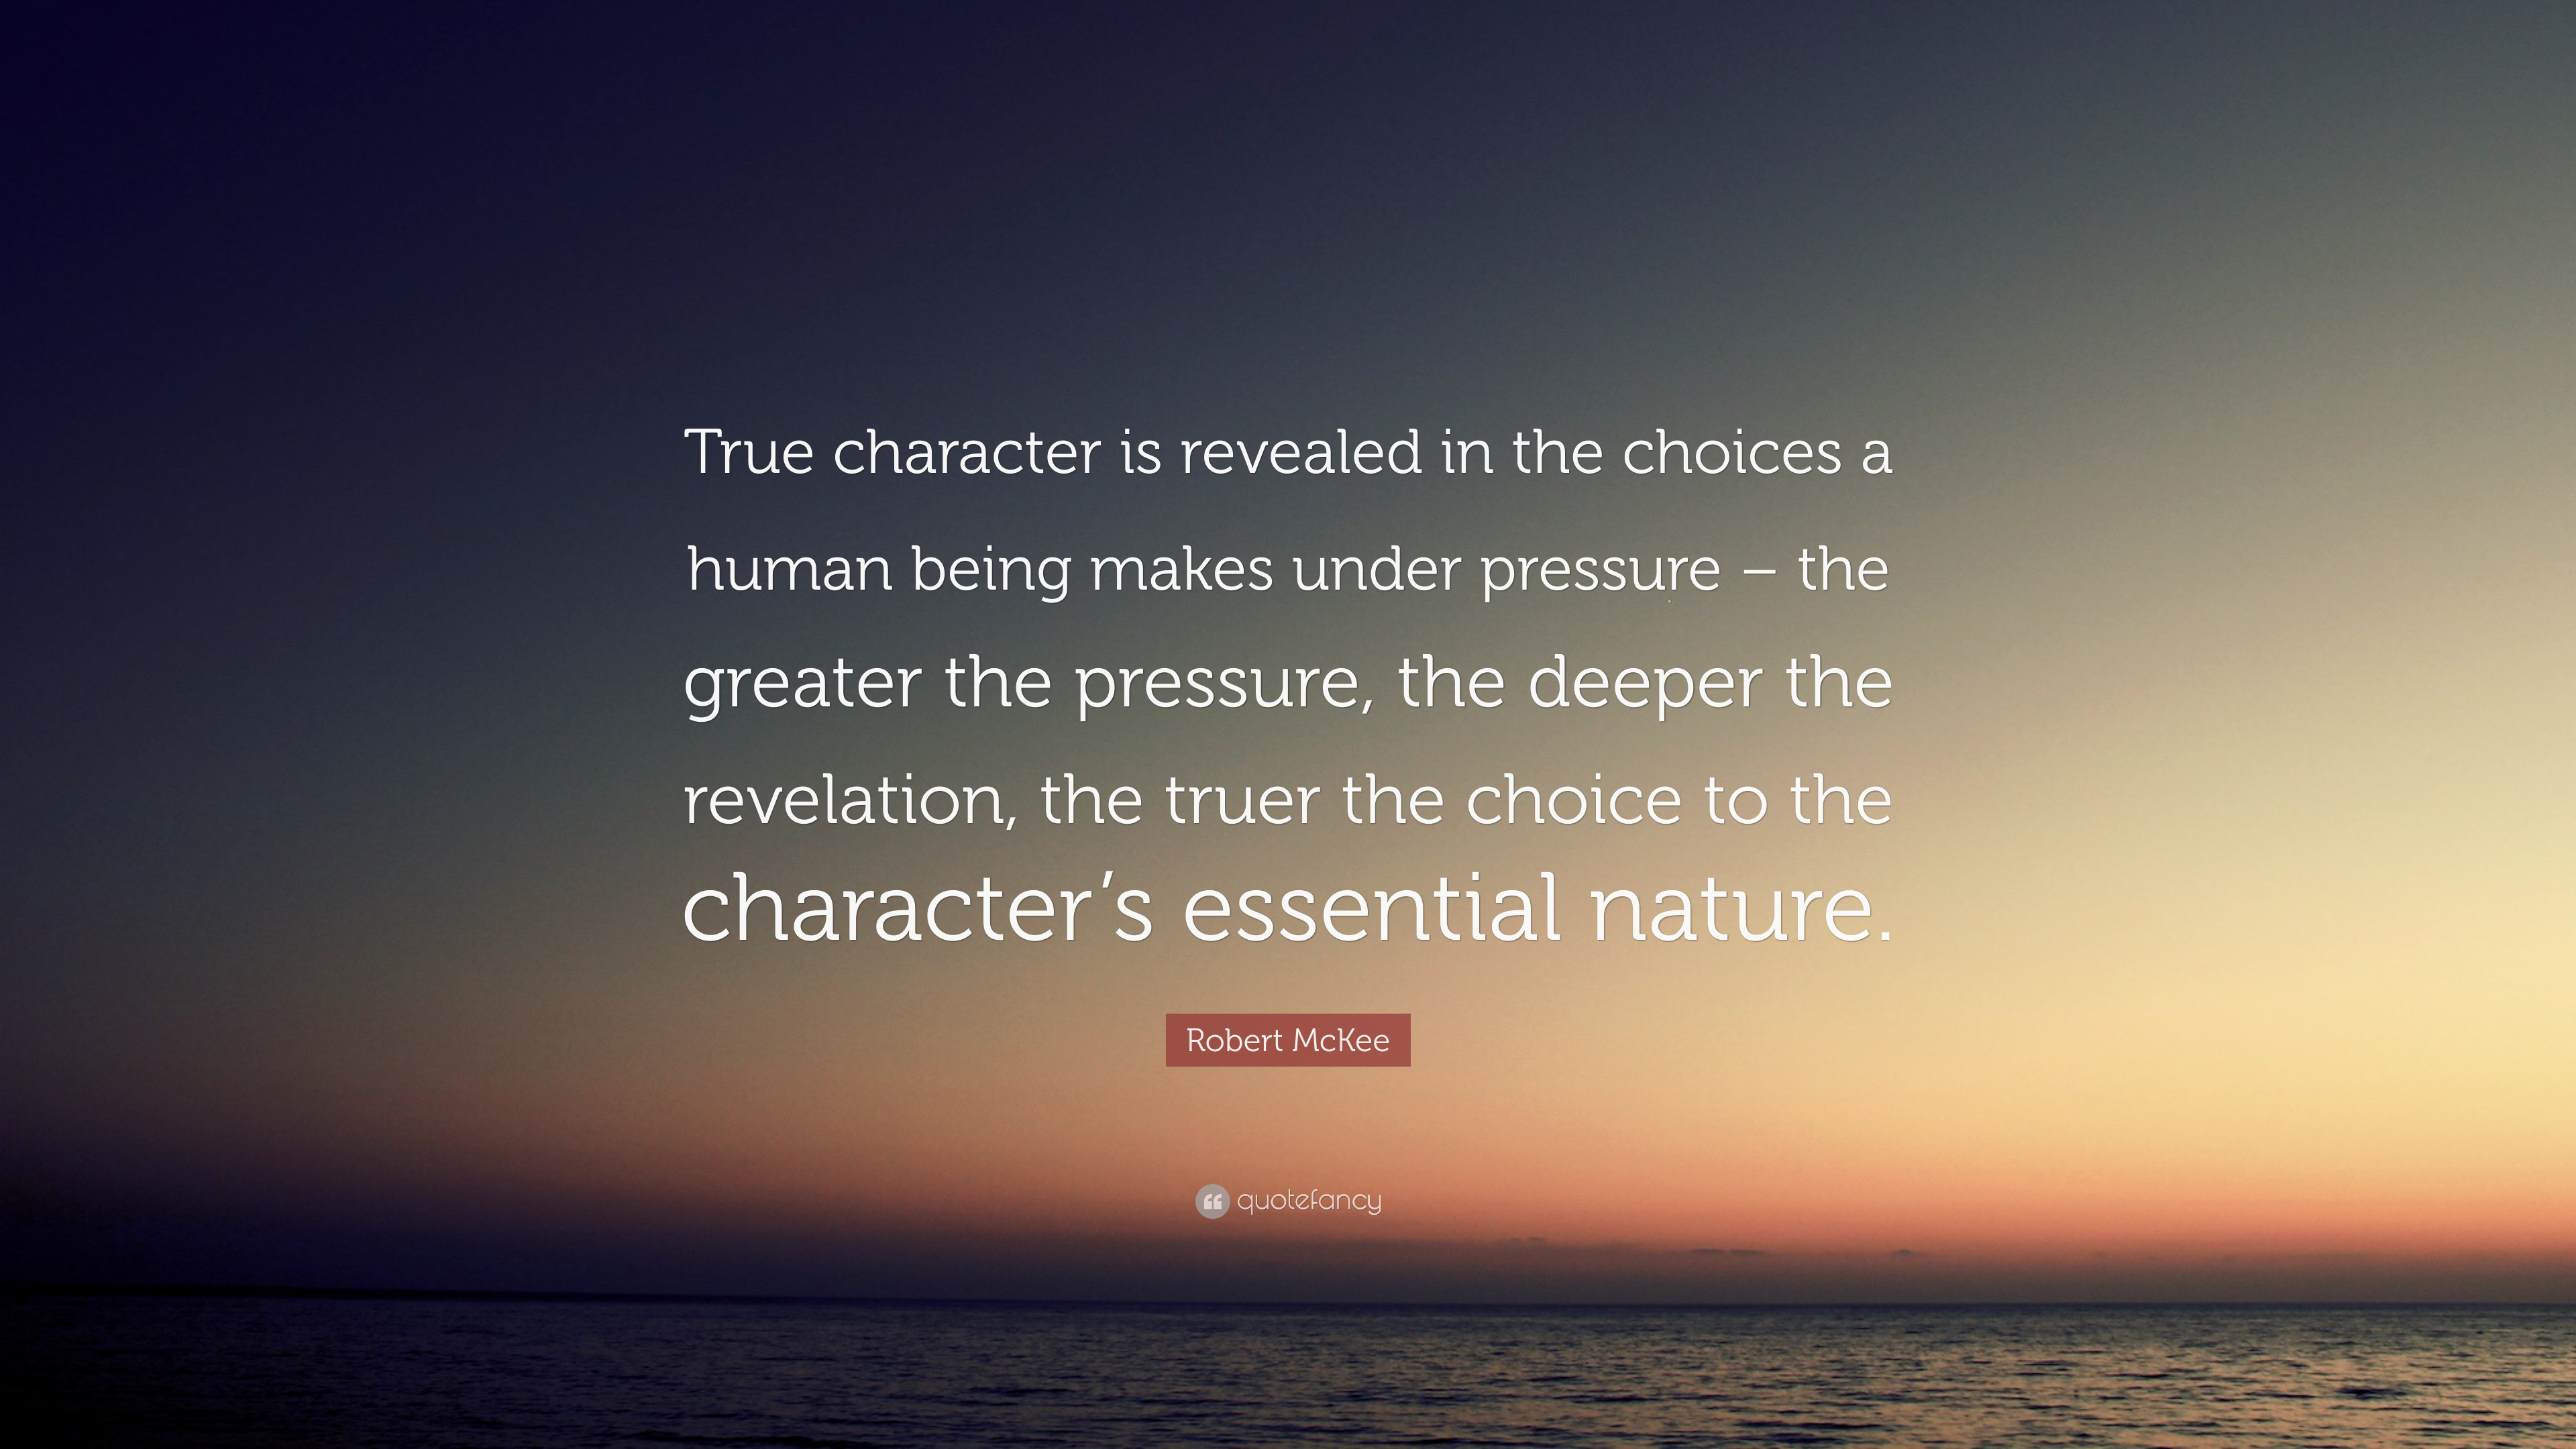 Robert Mckee Quote True Character Is Revealed In The Choices A